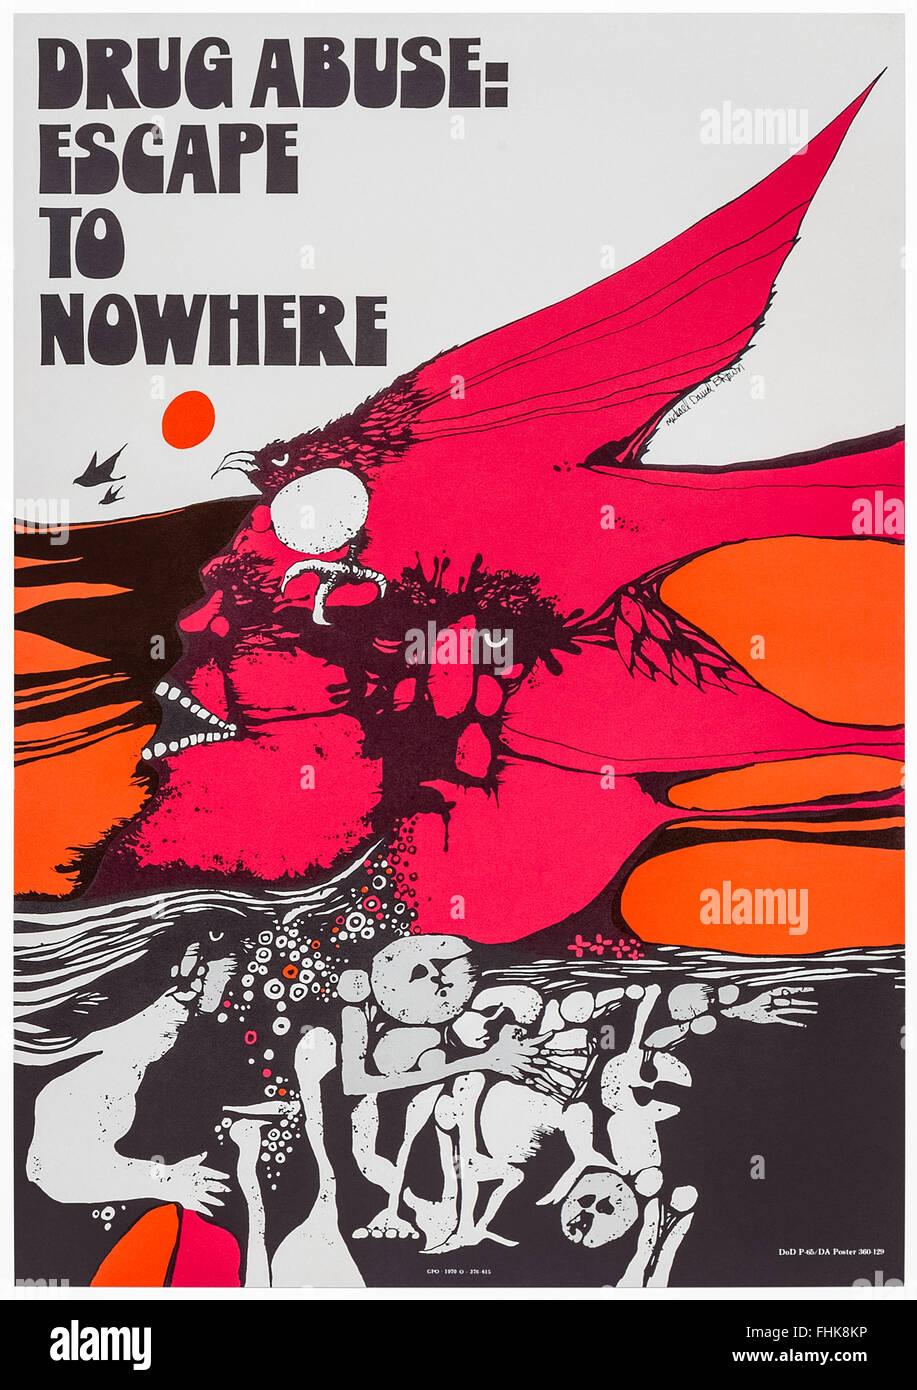 'Drug Abuse: Escape to Nowhere' US anti-drugs campaign poster 1970 designed by Michael David Brown. - Stock Image